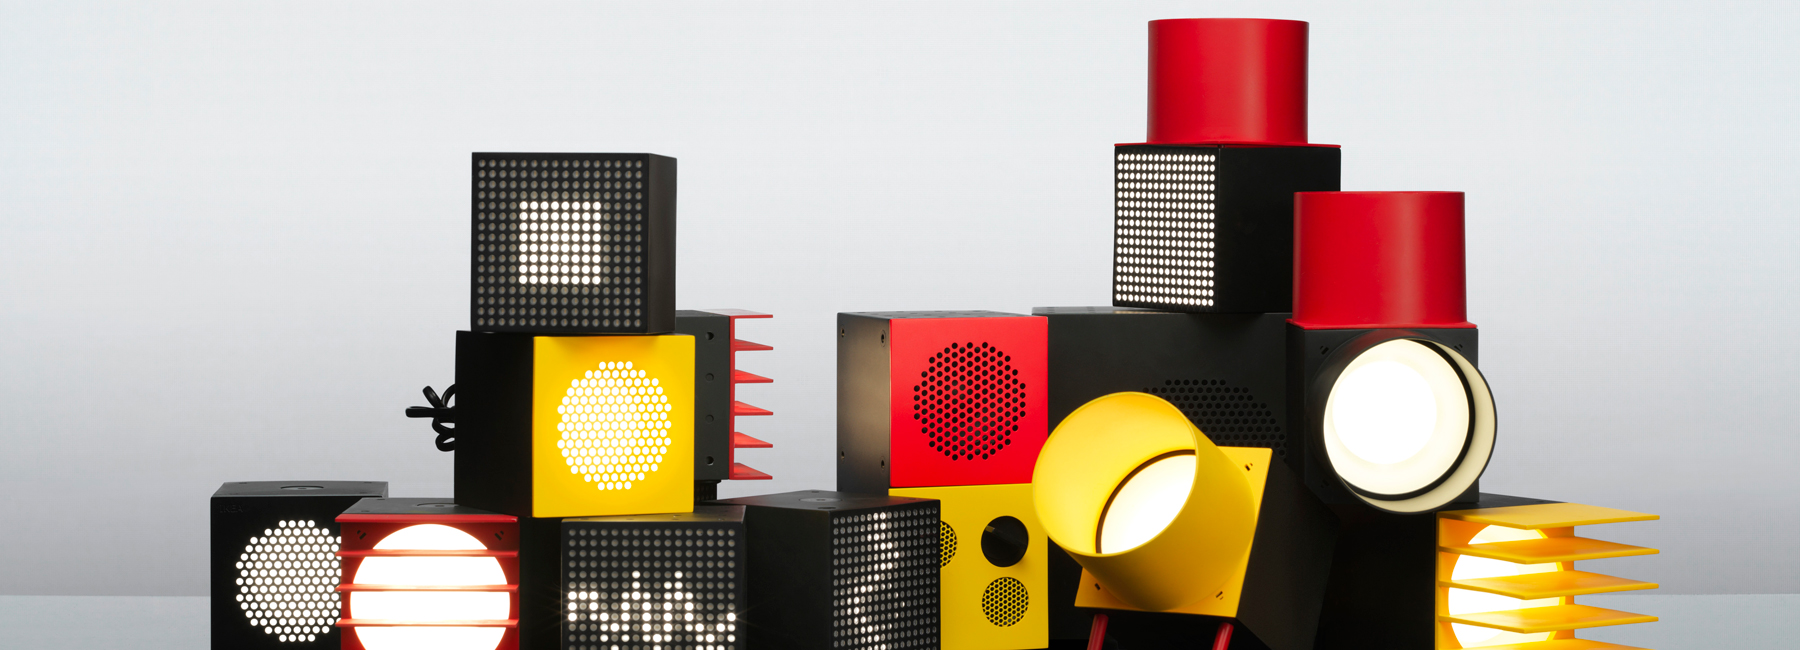 Ikea French Days Lego Adidas And Olafur Eliasson Are Collaborating With Ikea